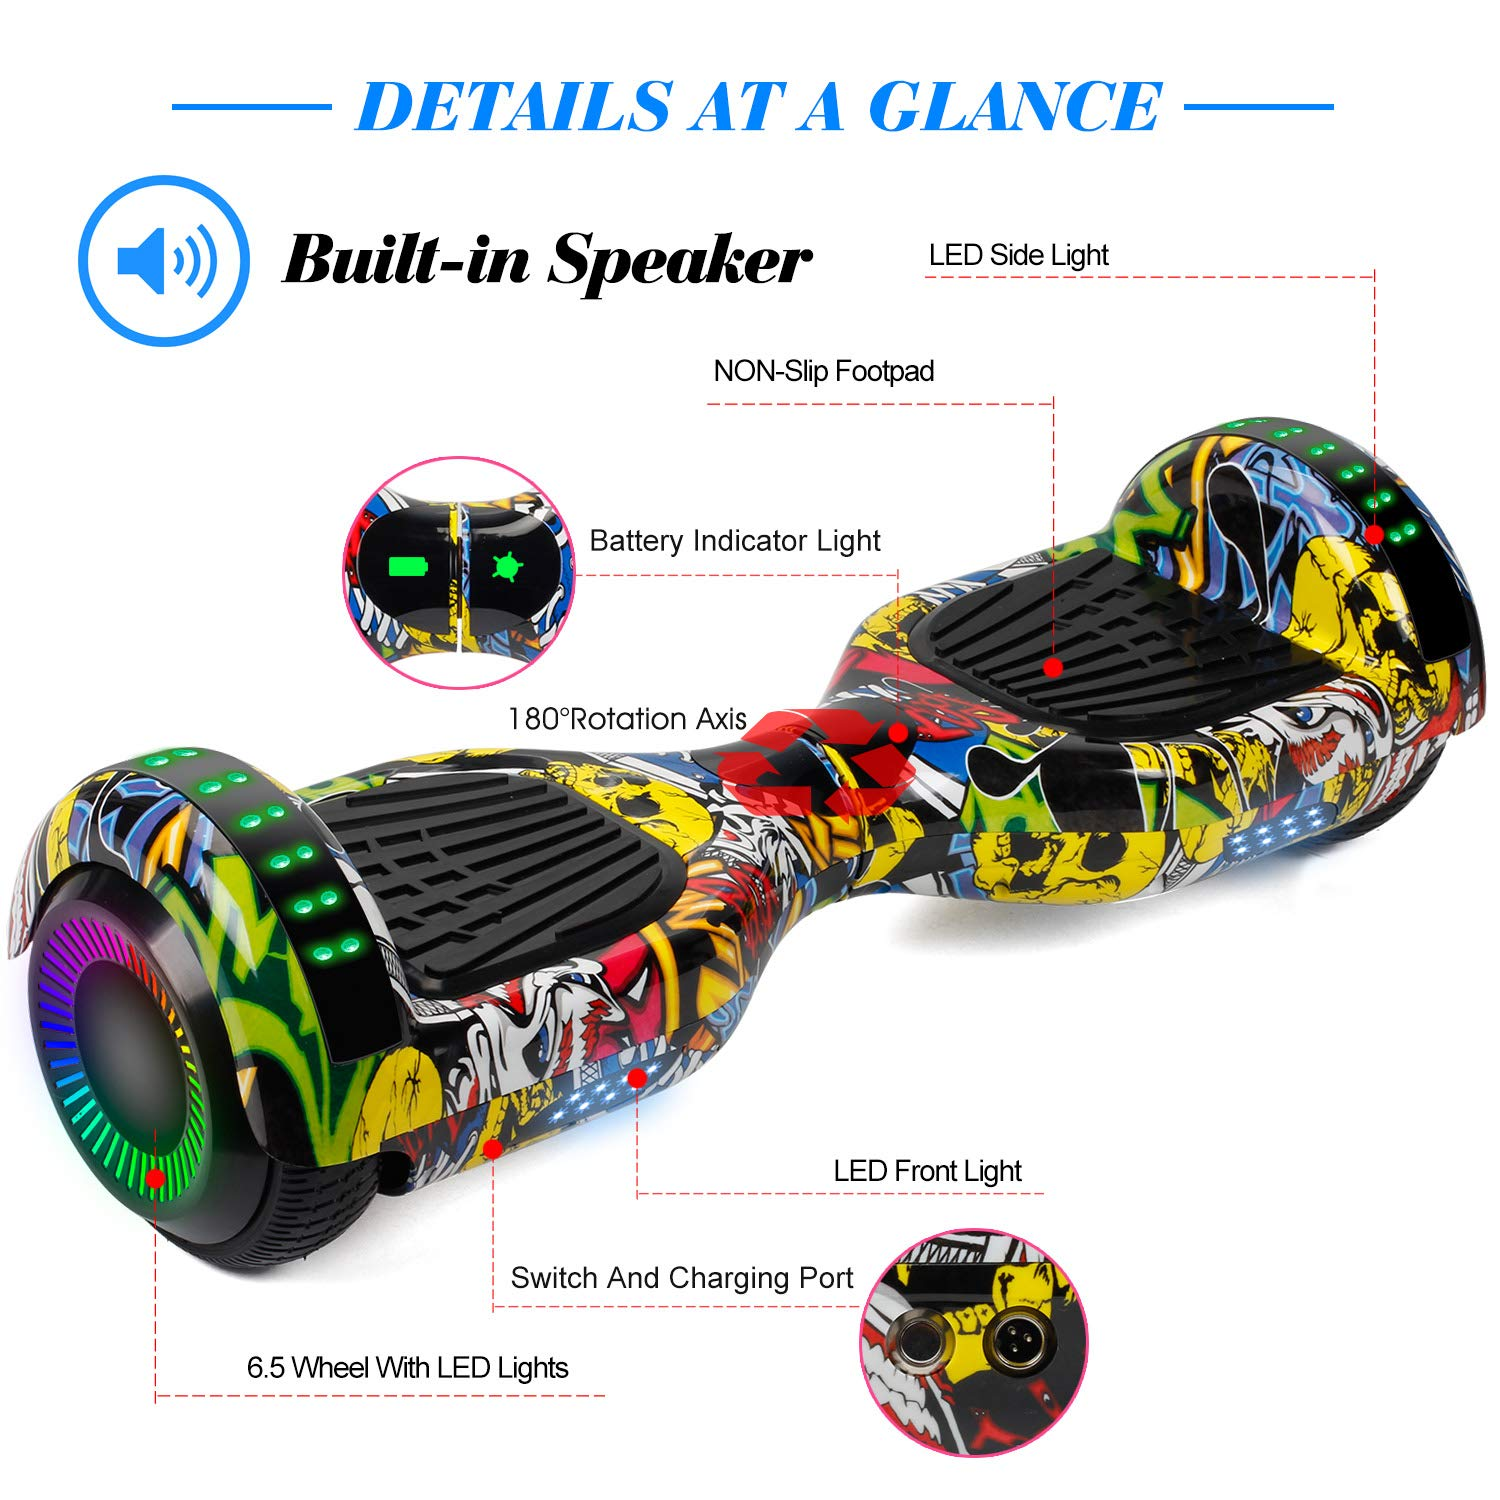 SWEETBUY Hoverboard Two-Wheel Self Balancing Electric Scooter UL 2272 Certified,6.5 inch Self Balancing Scooter with Carry Bag by SWEETBUY (Image #2)